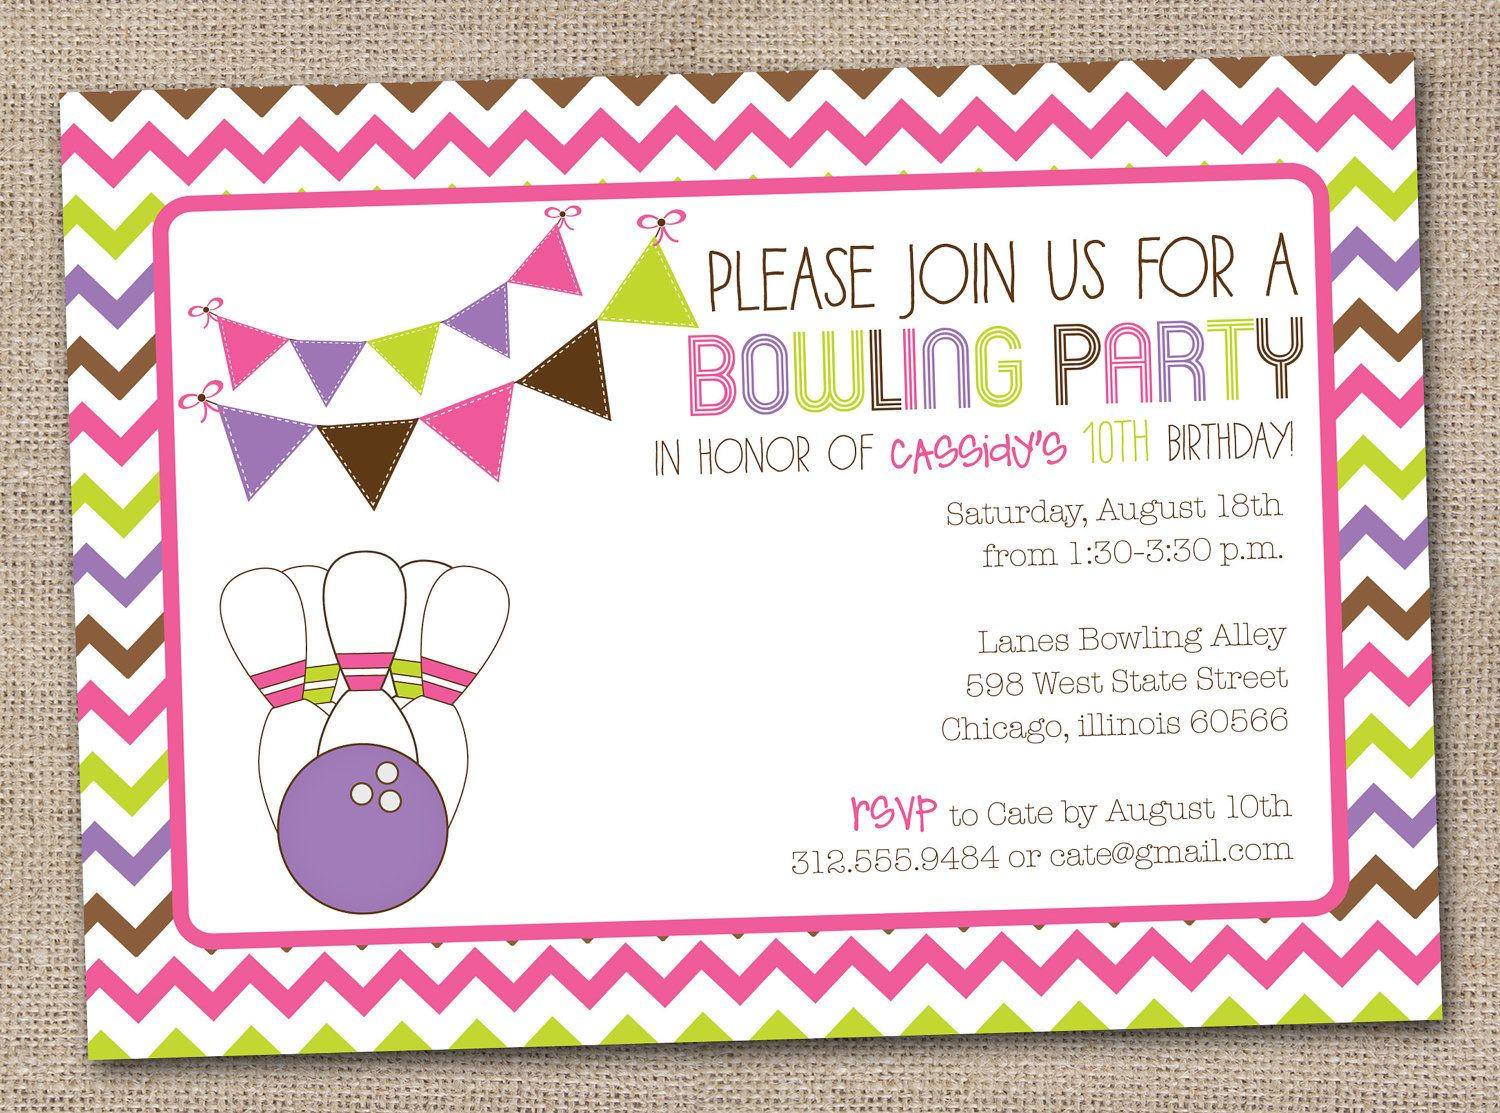 Reserved for Debbie - Girls Bowling Party Printable Birthday Party ...